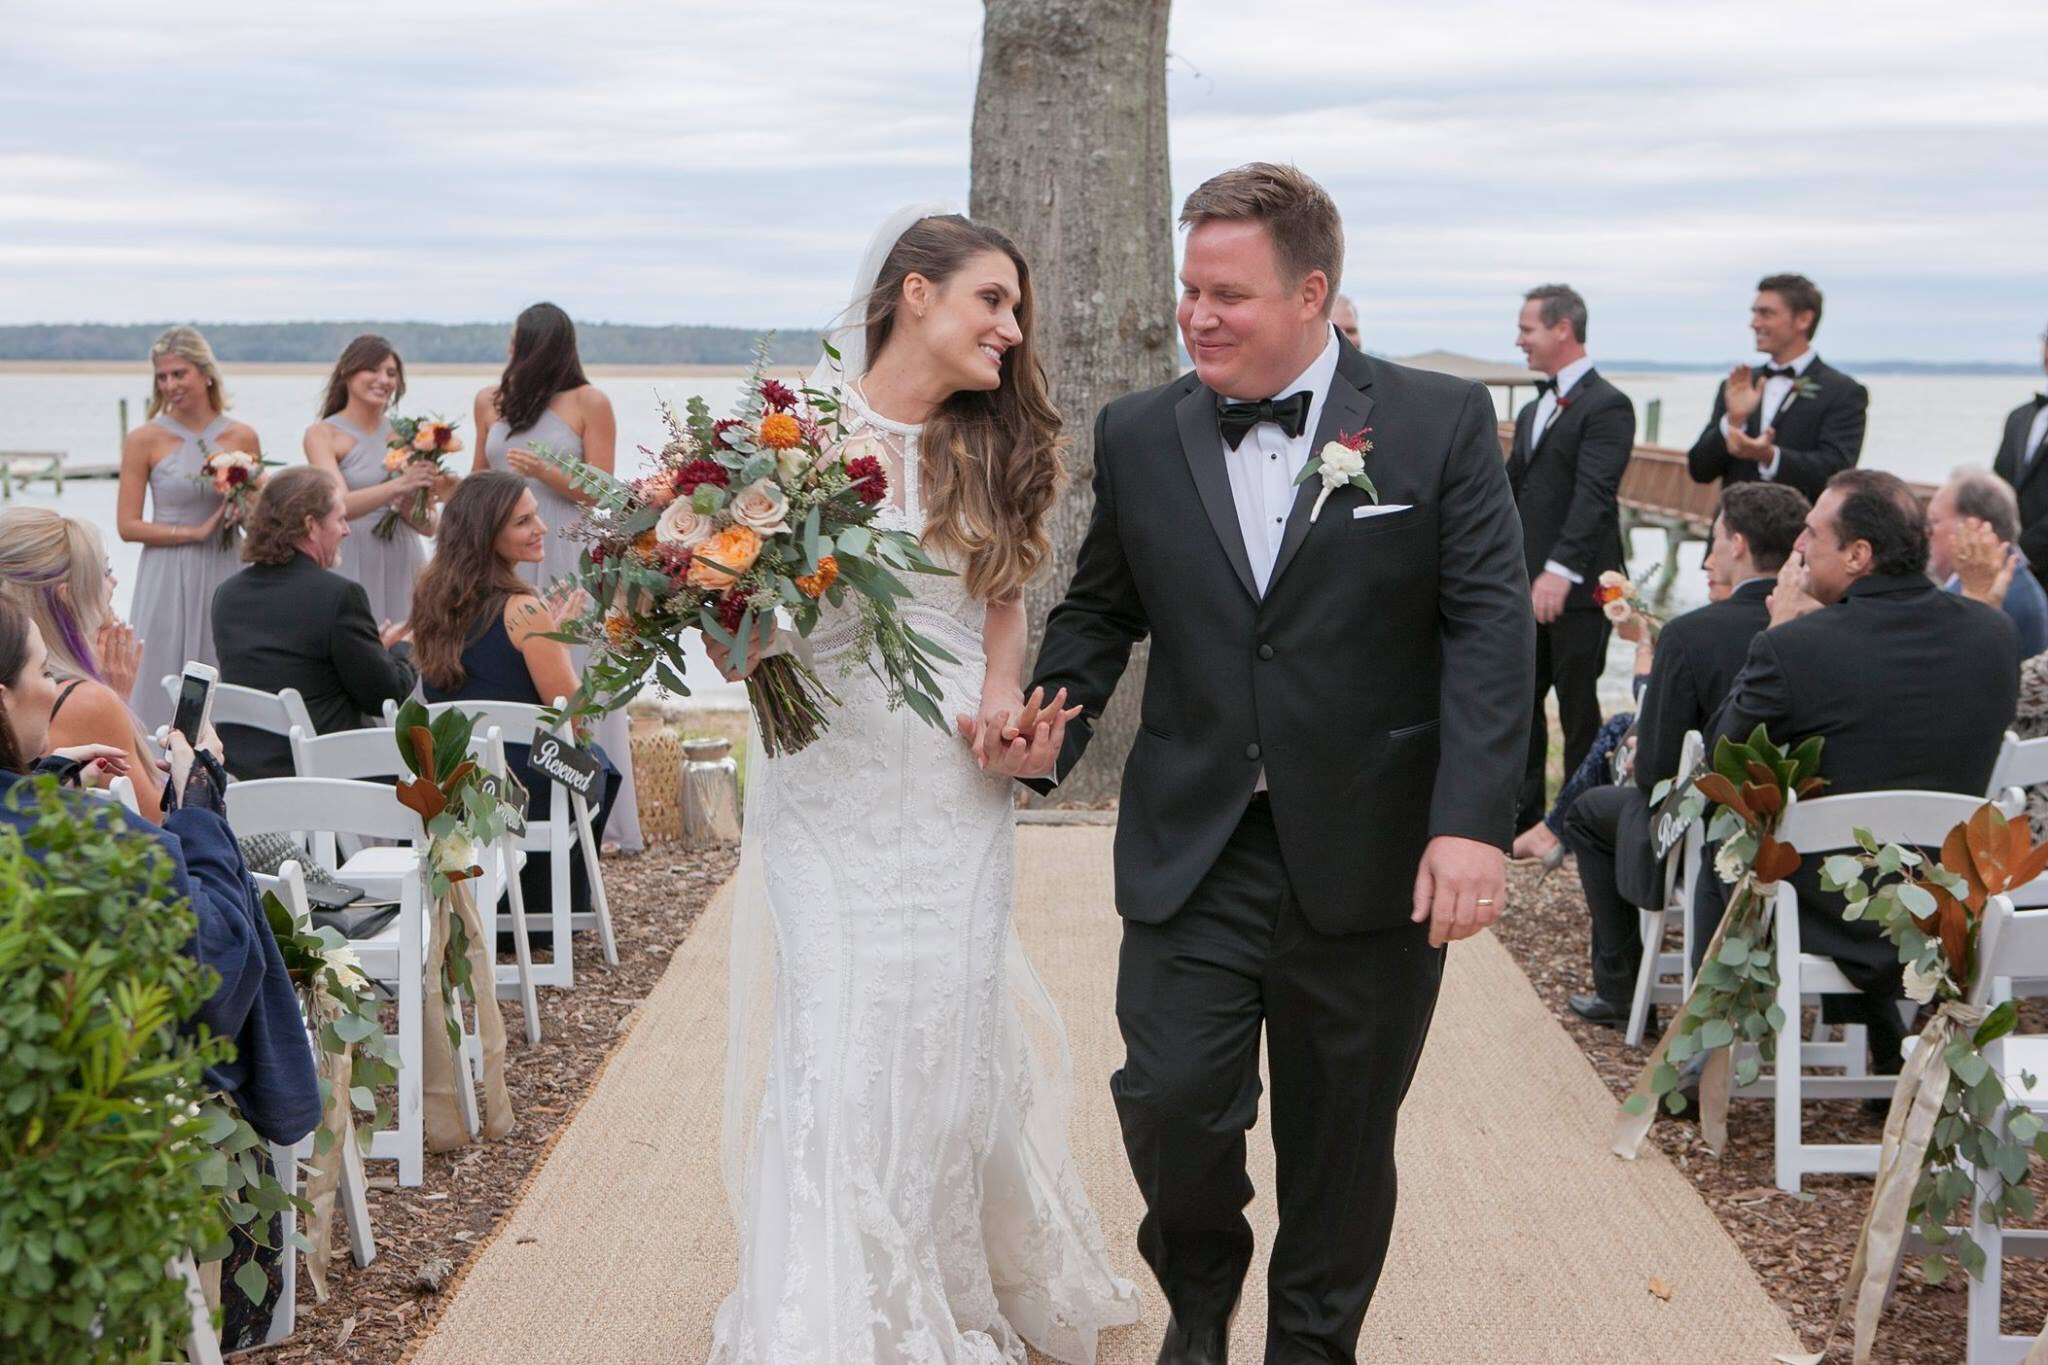 lowcountry-kitchen-catering-beaufort-sc-scott-and-robin-shay-wedding-bride-groom.jpeg